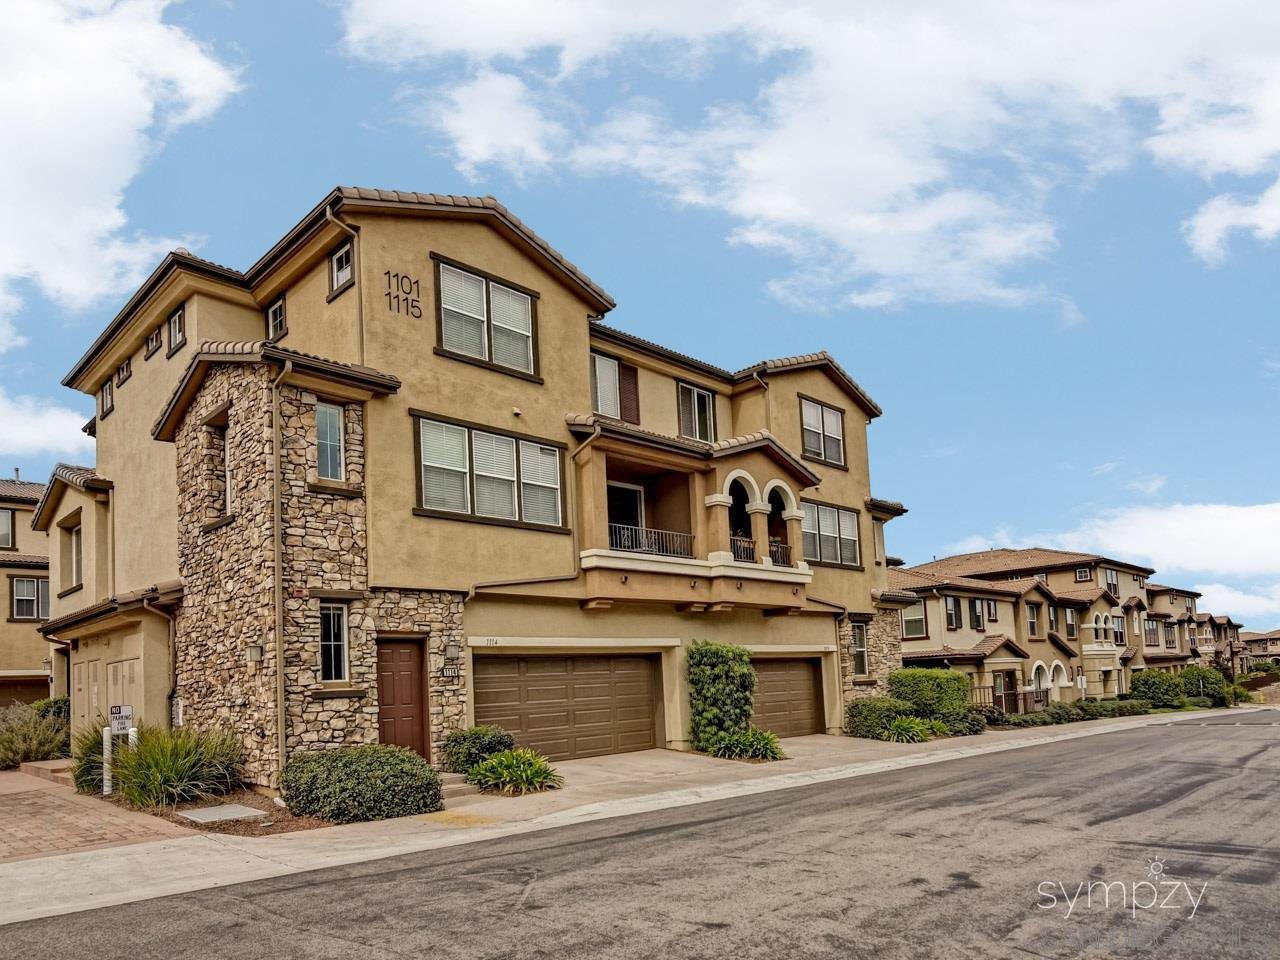 Main Photo: SANTEE Townhome for rent : 3 bedrooms : 1112 CALABRIA ST